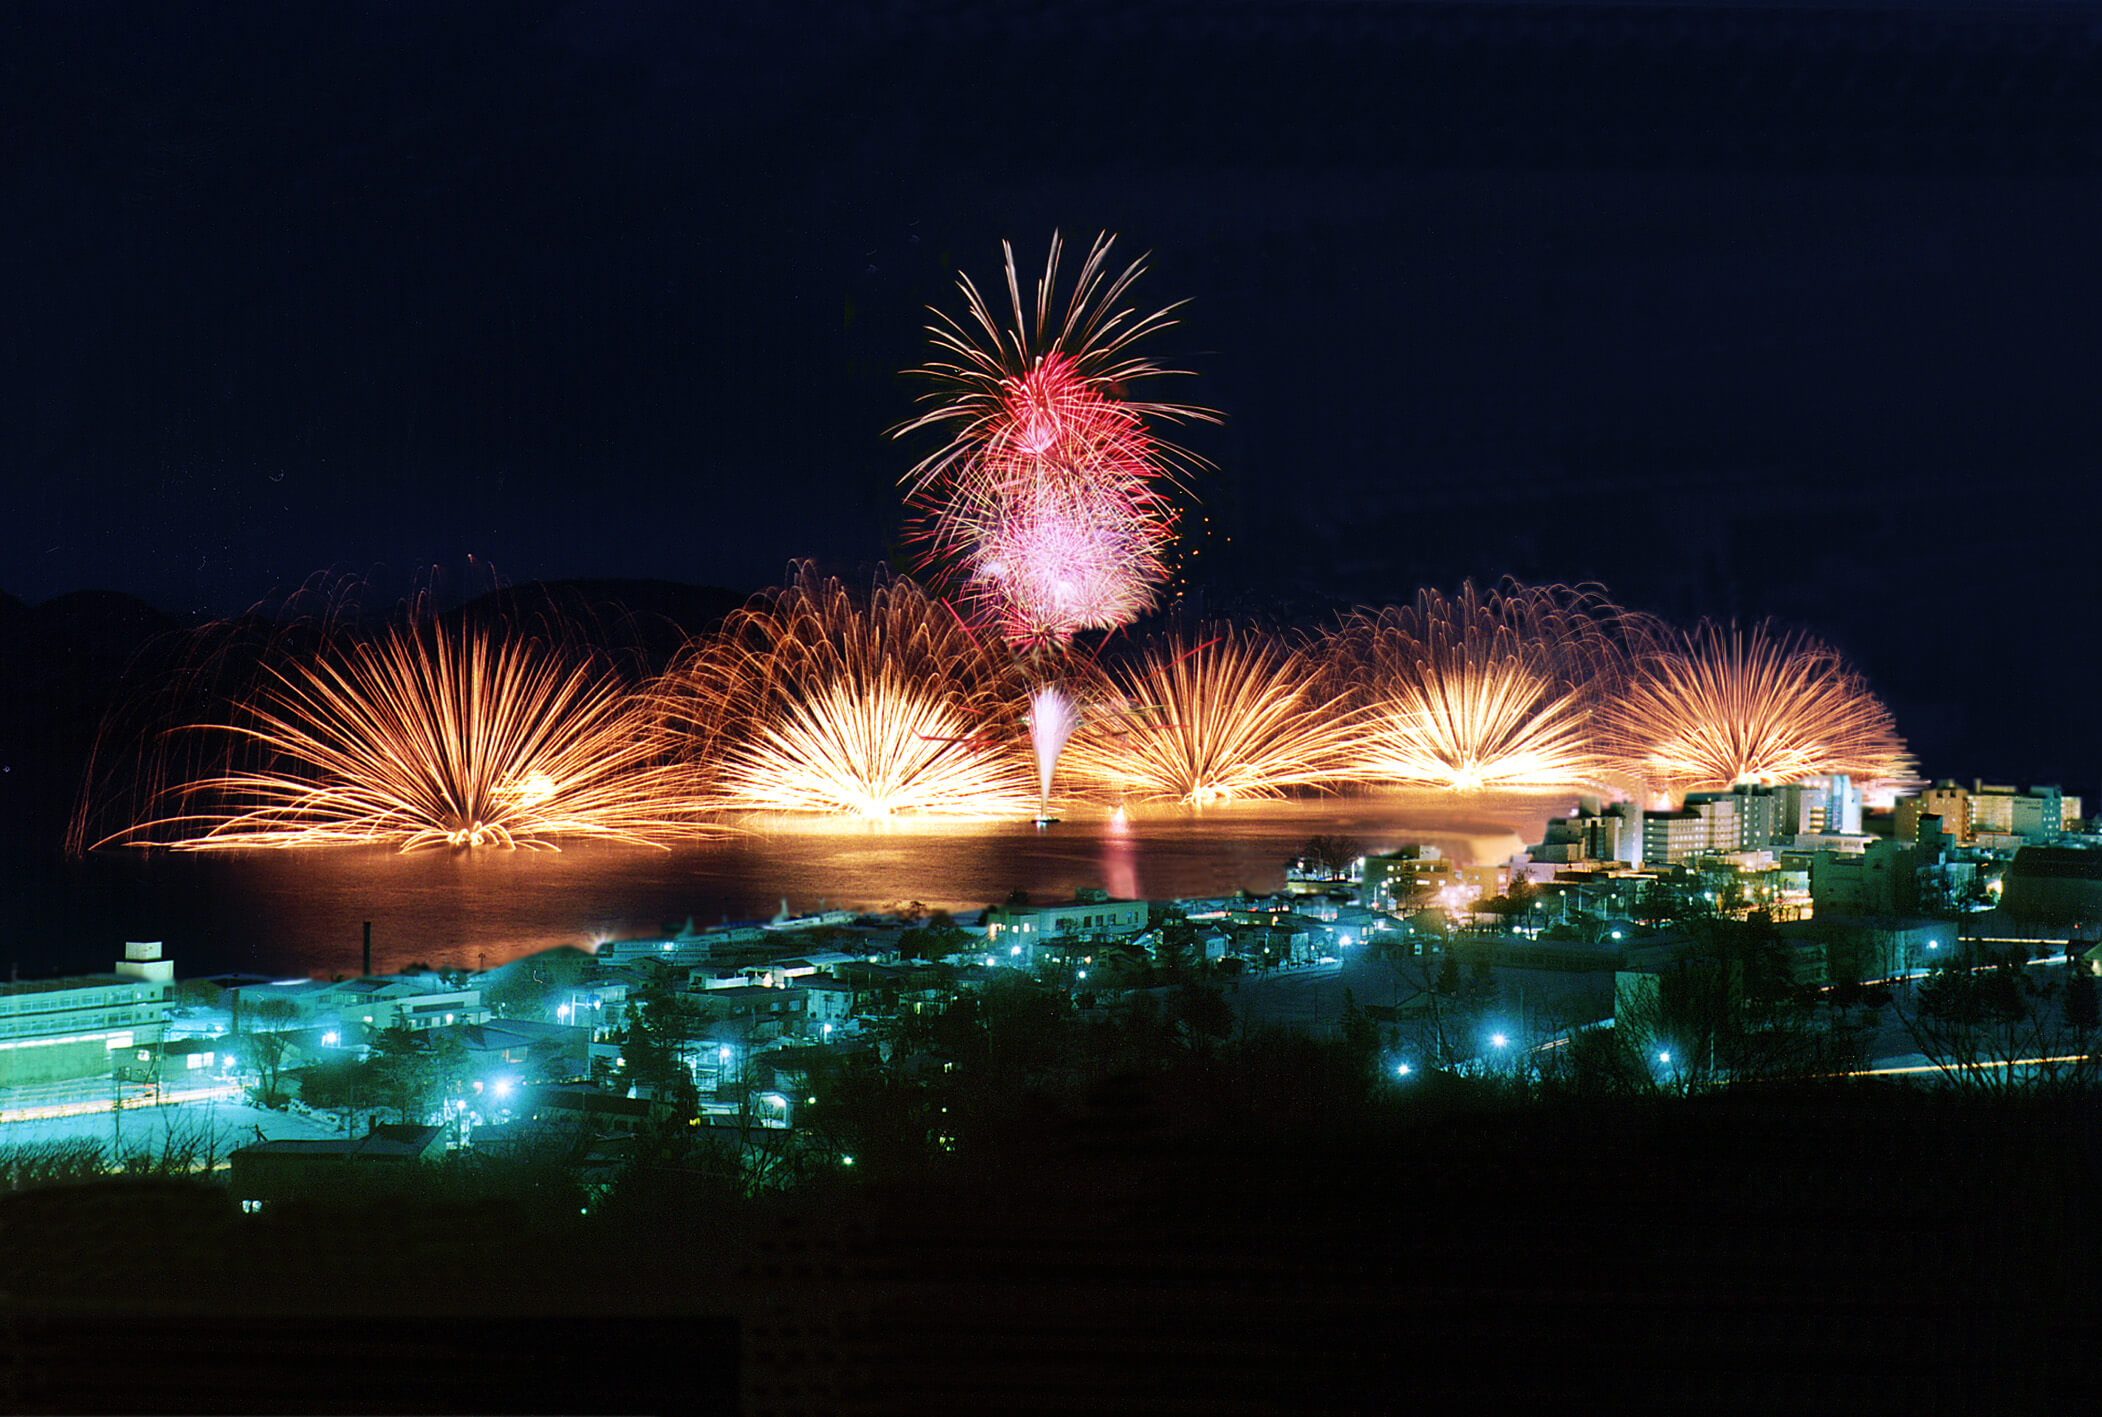 Take a Romantic Boatride Underneath the Fireworks on Lake Toya